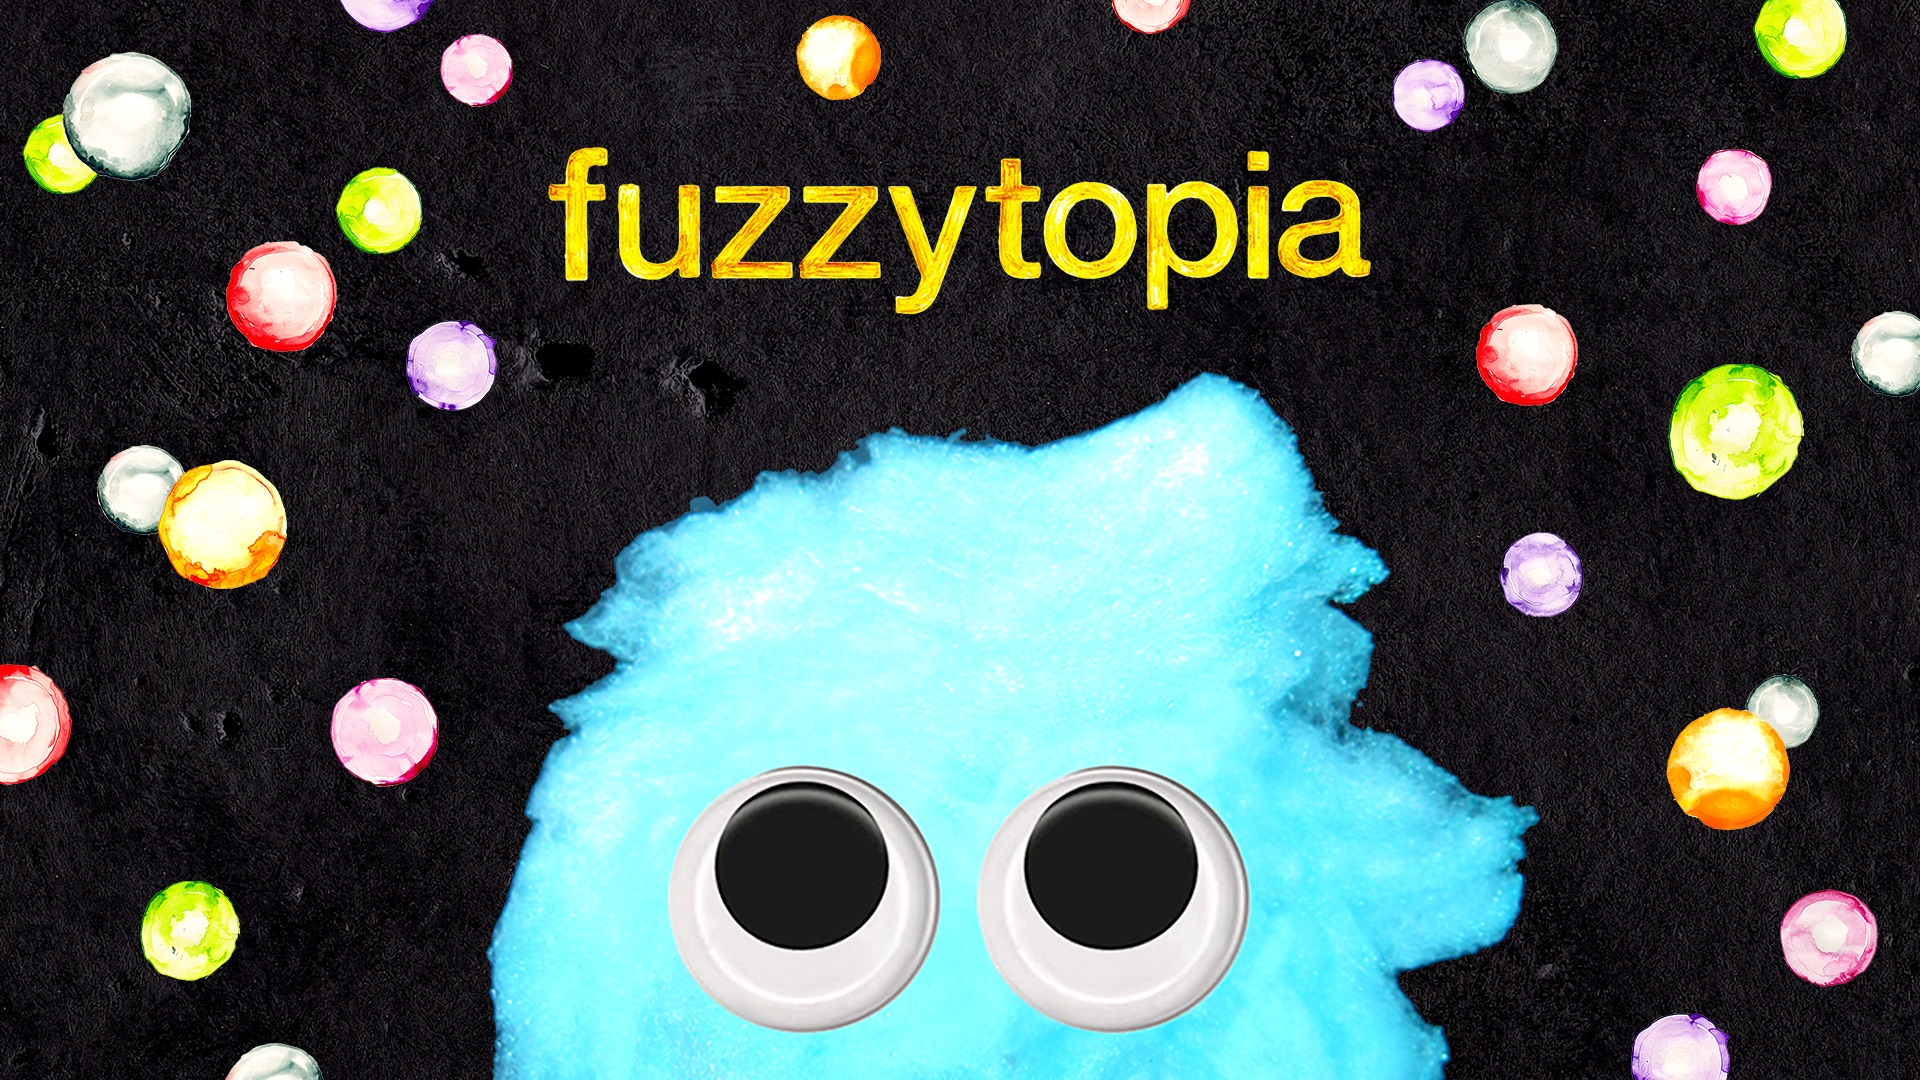 Free the fuzzies in Fuzzytopia, a new bubble shooter